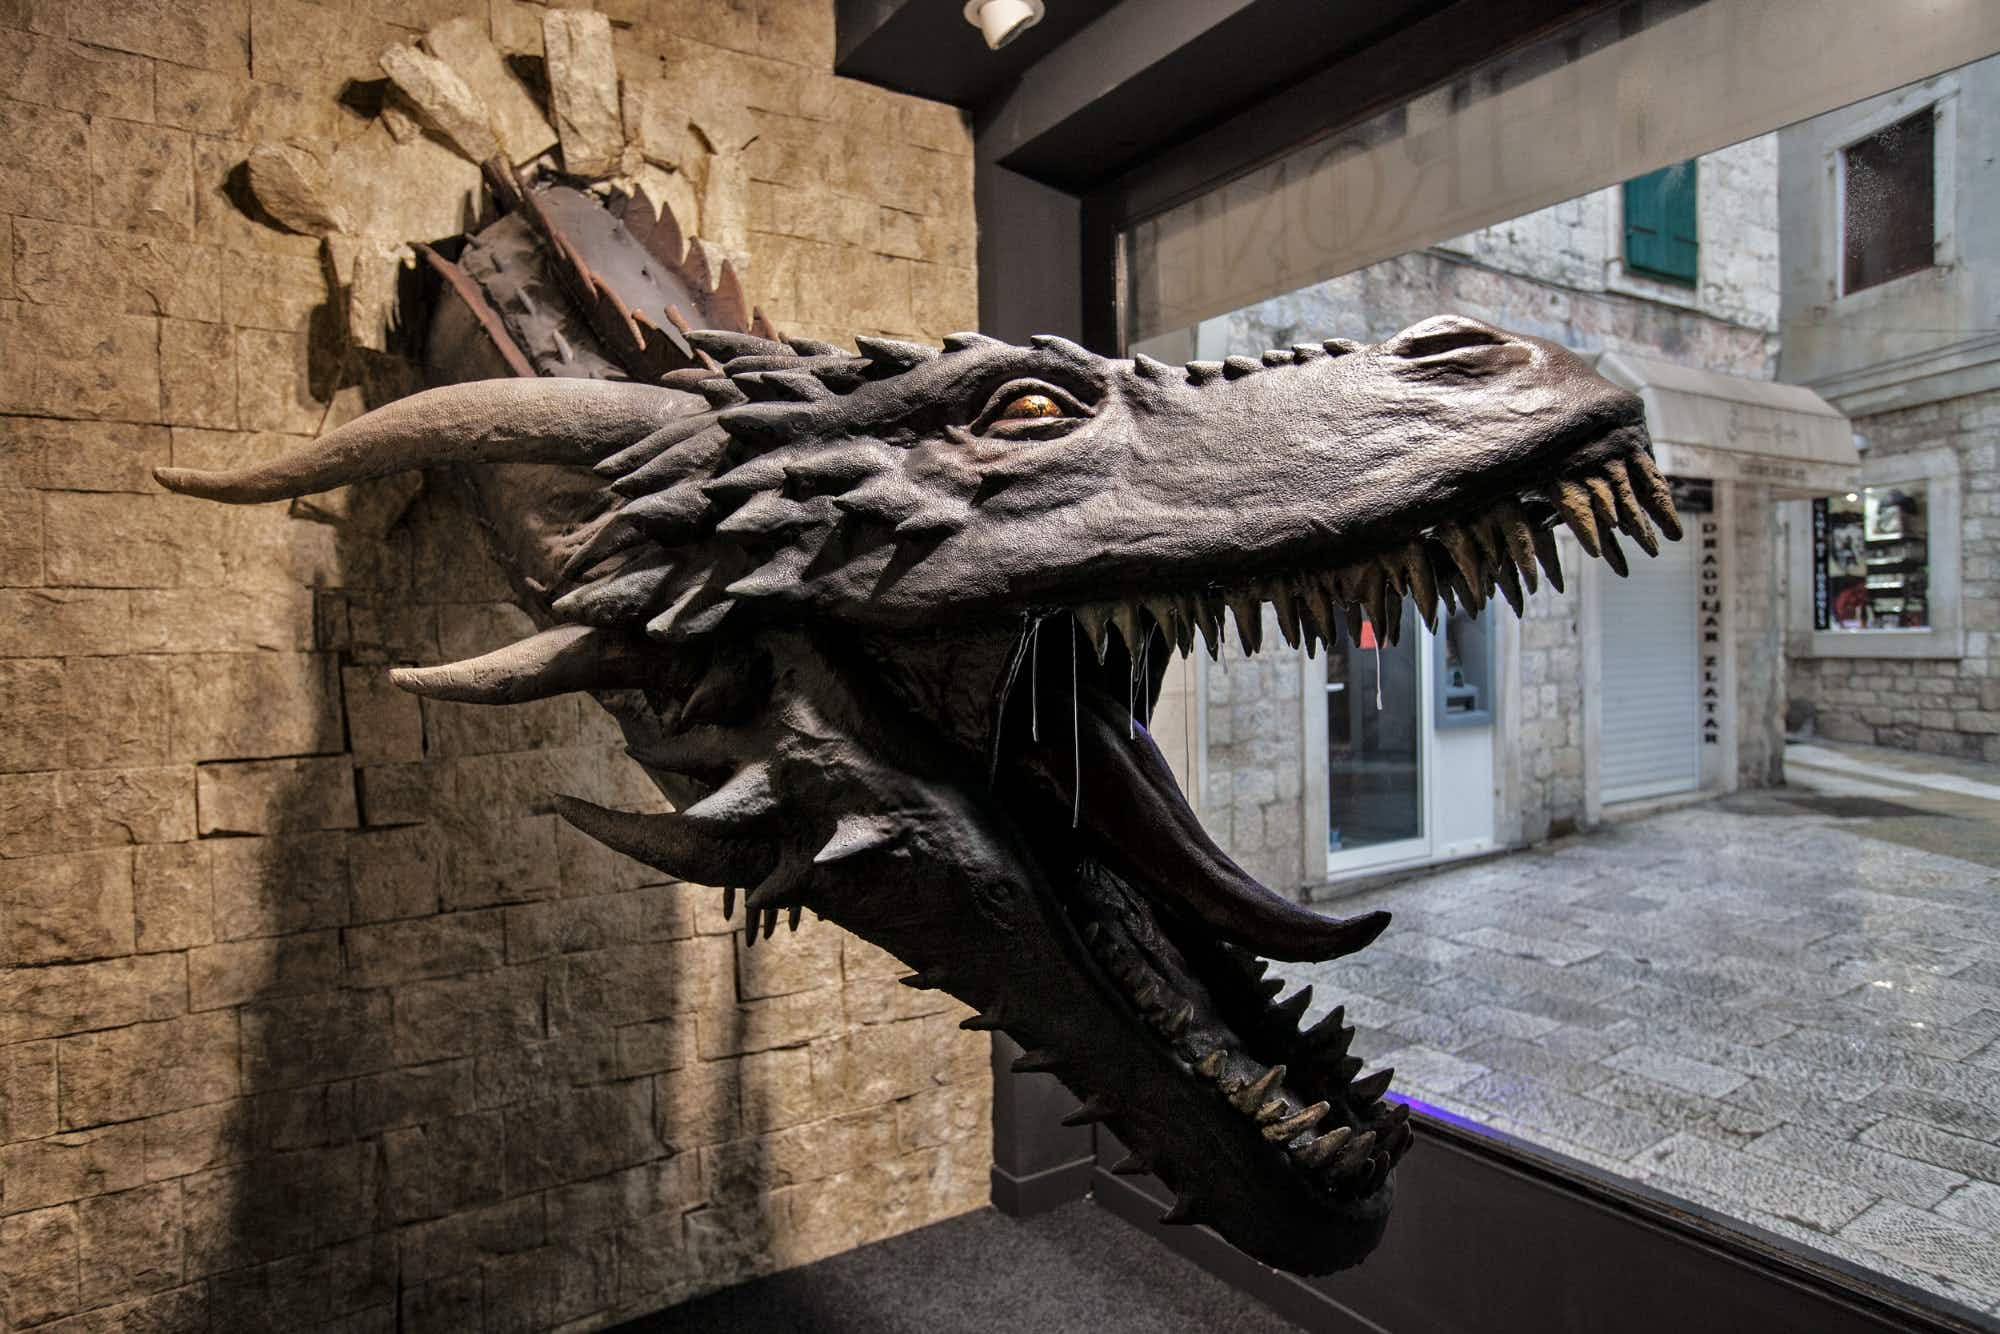 A new Game of Thrones museum opens in Split